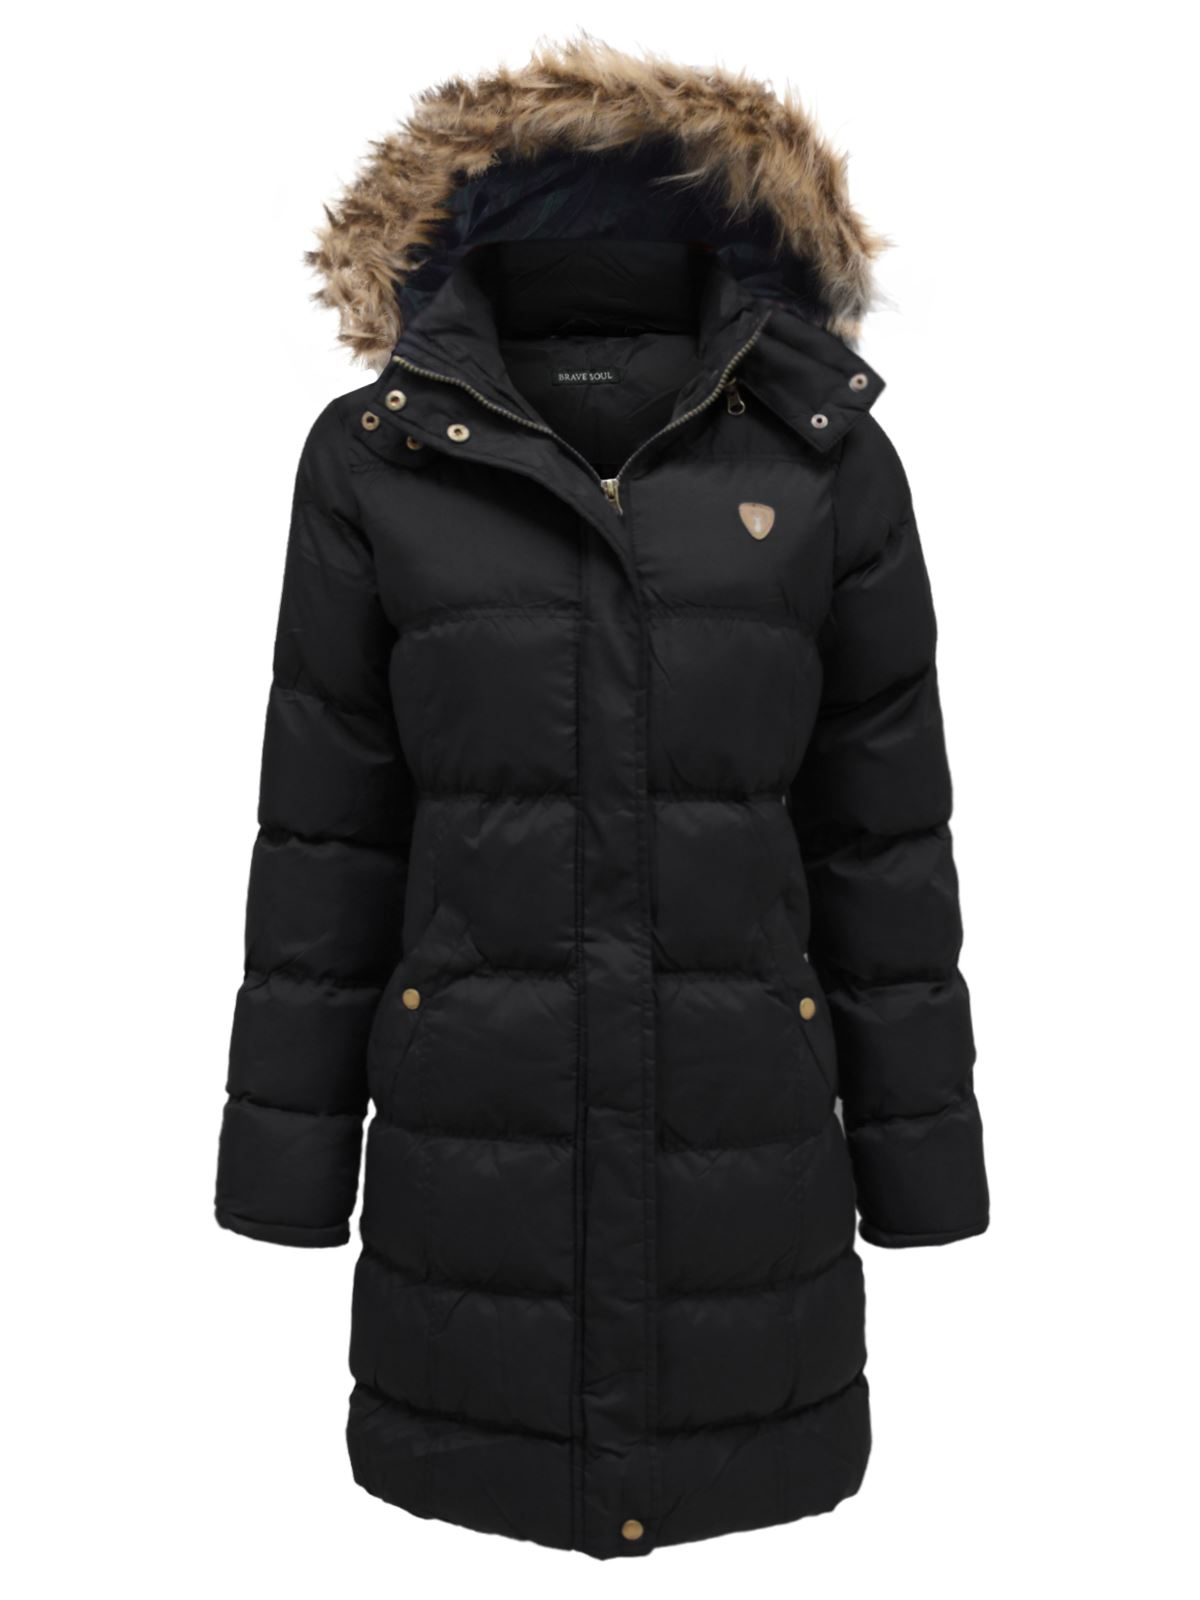 Long black padded coat ladies | Your fashionable jacket photo blog